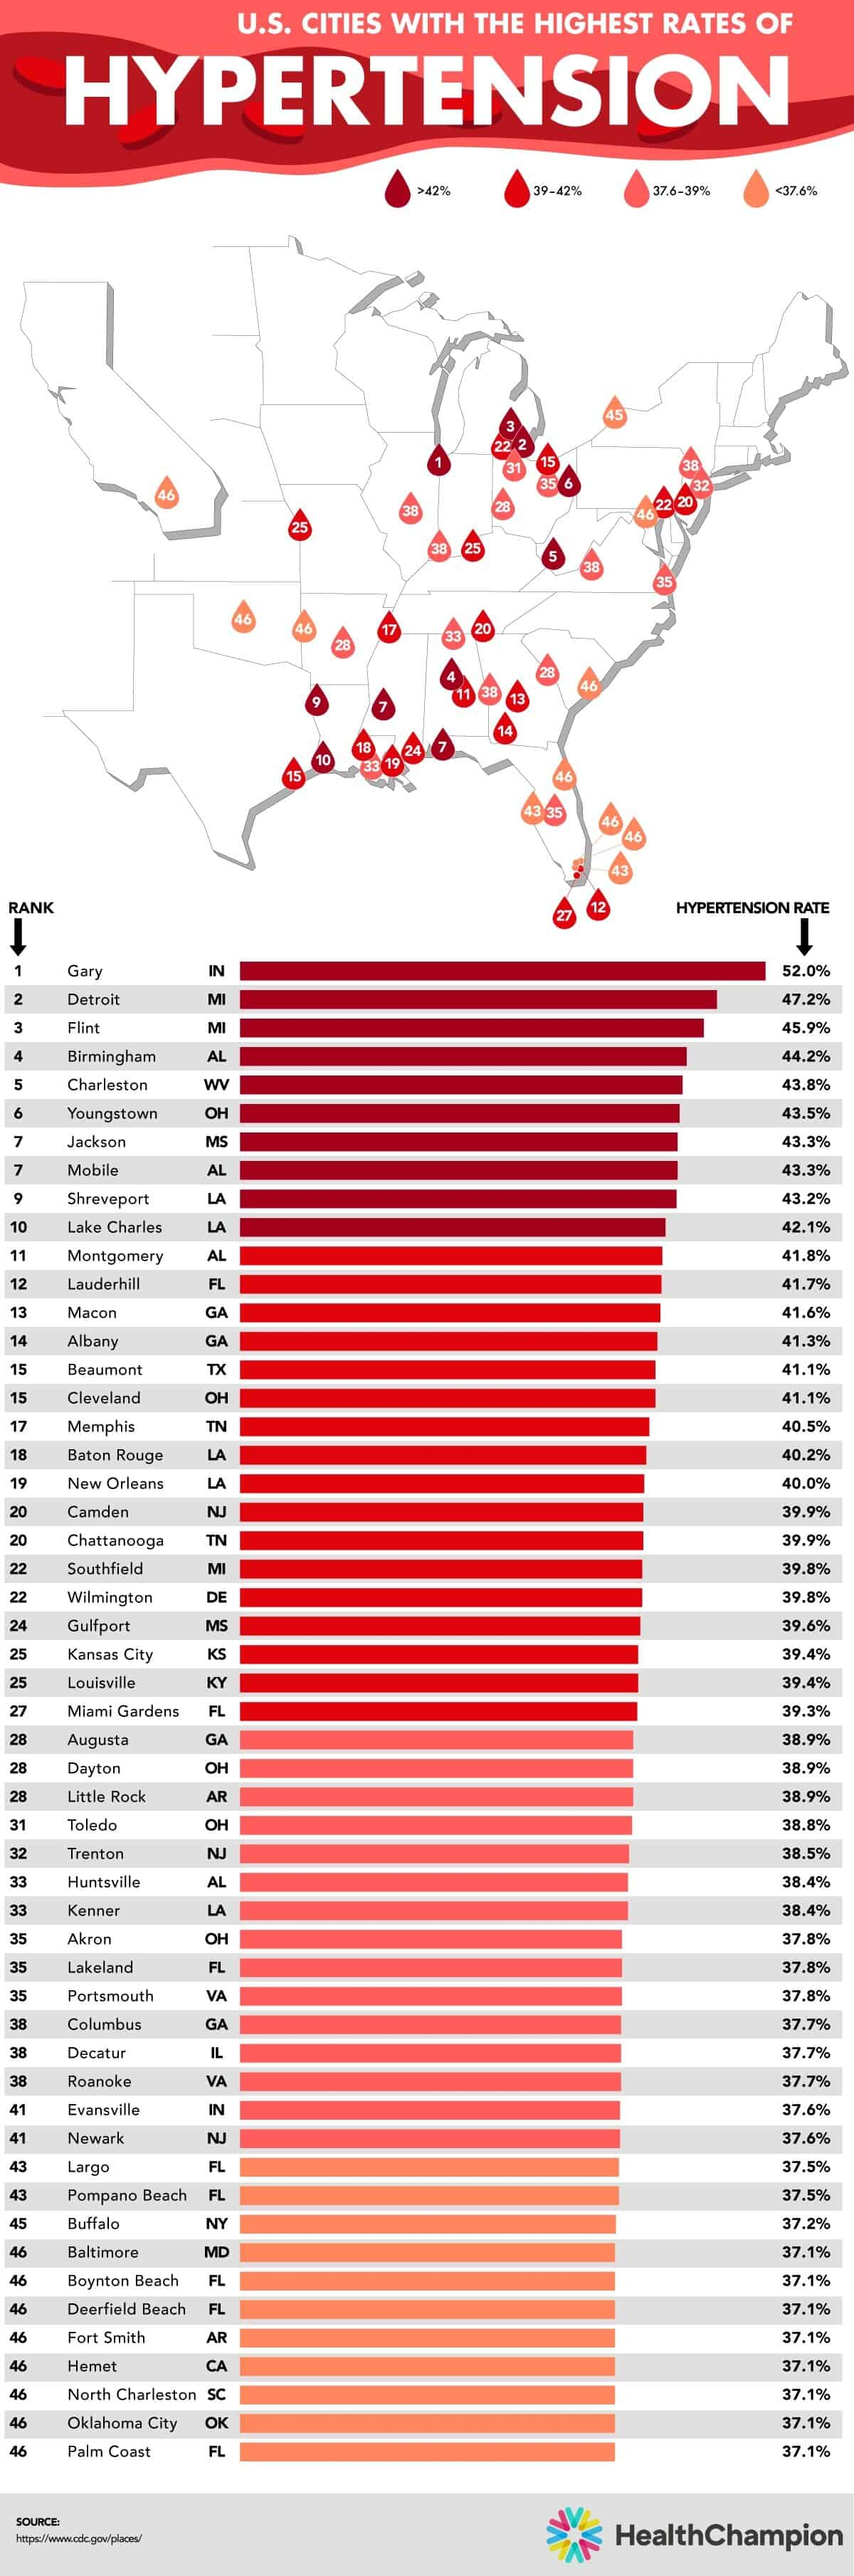 U.S. Cities With the Highest Rates of High Blood Pressure